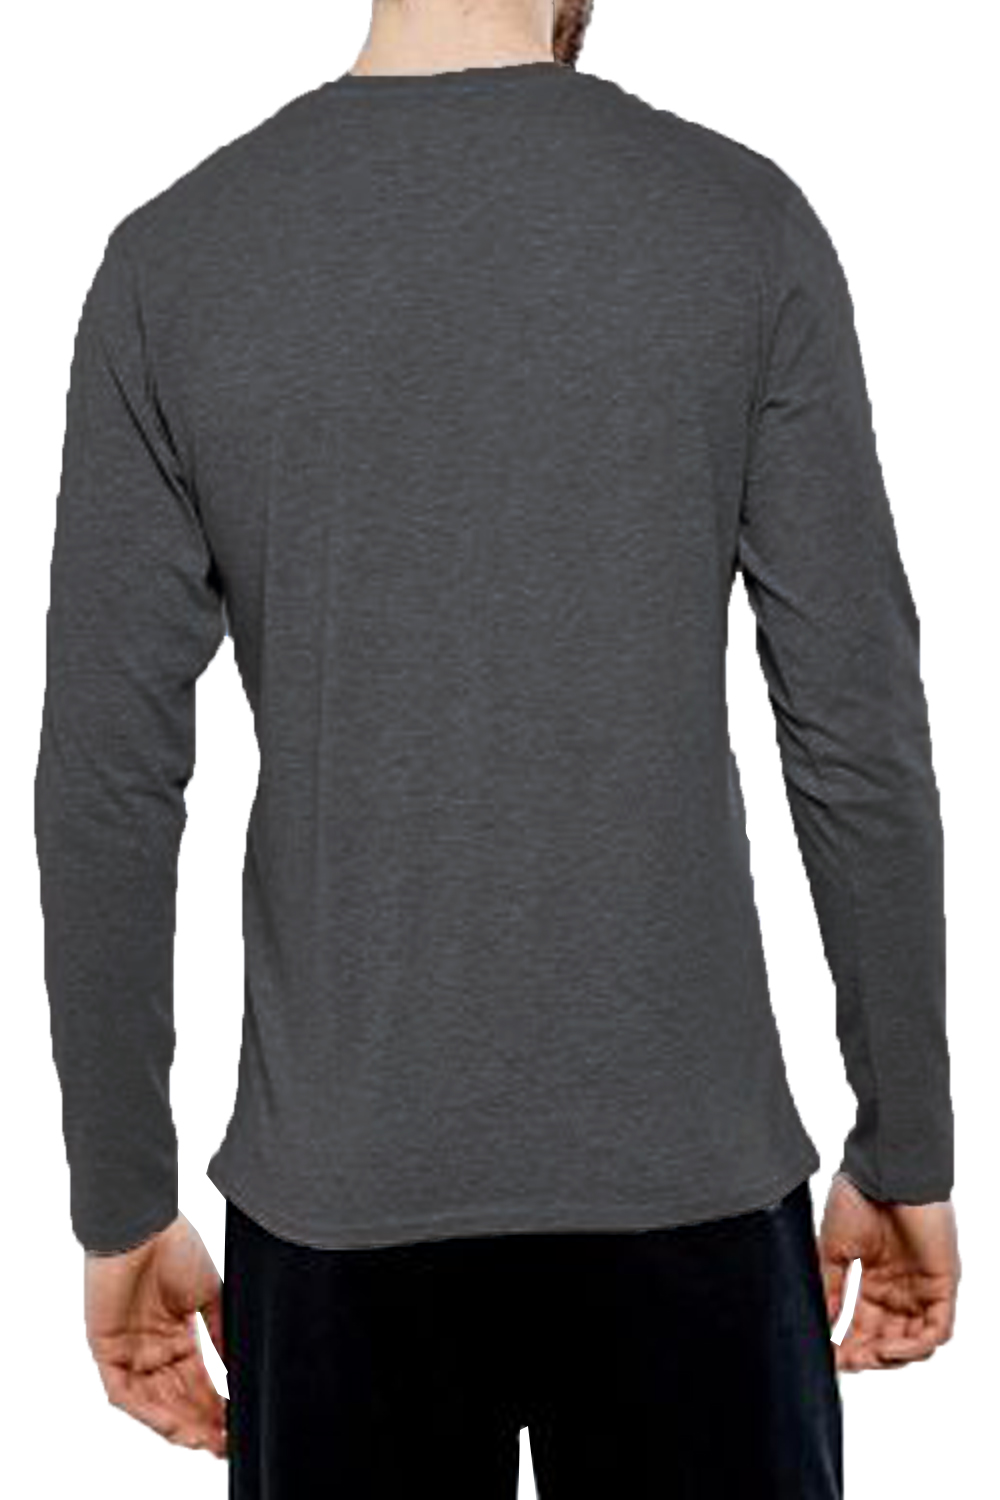 Threadbare-Mens-William-Long-Sleeve-T-Shirt-Cotton-Stretch-Round-Neck-Winter-Top thumbnail 10